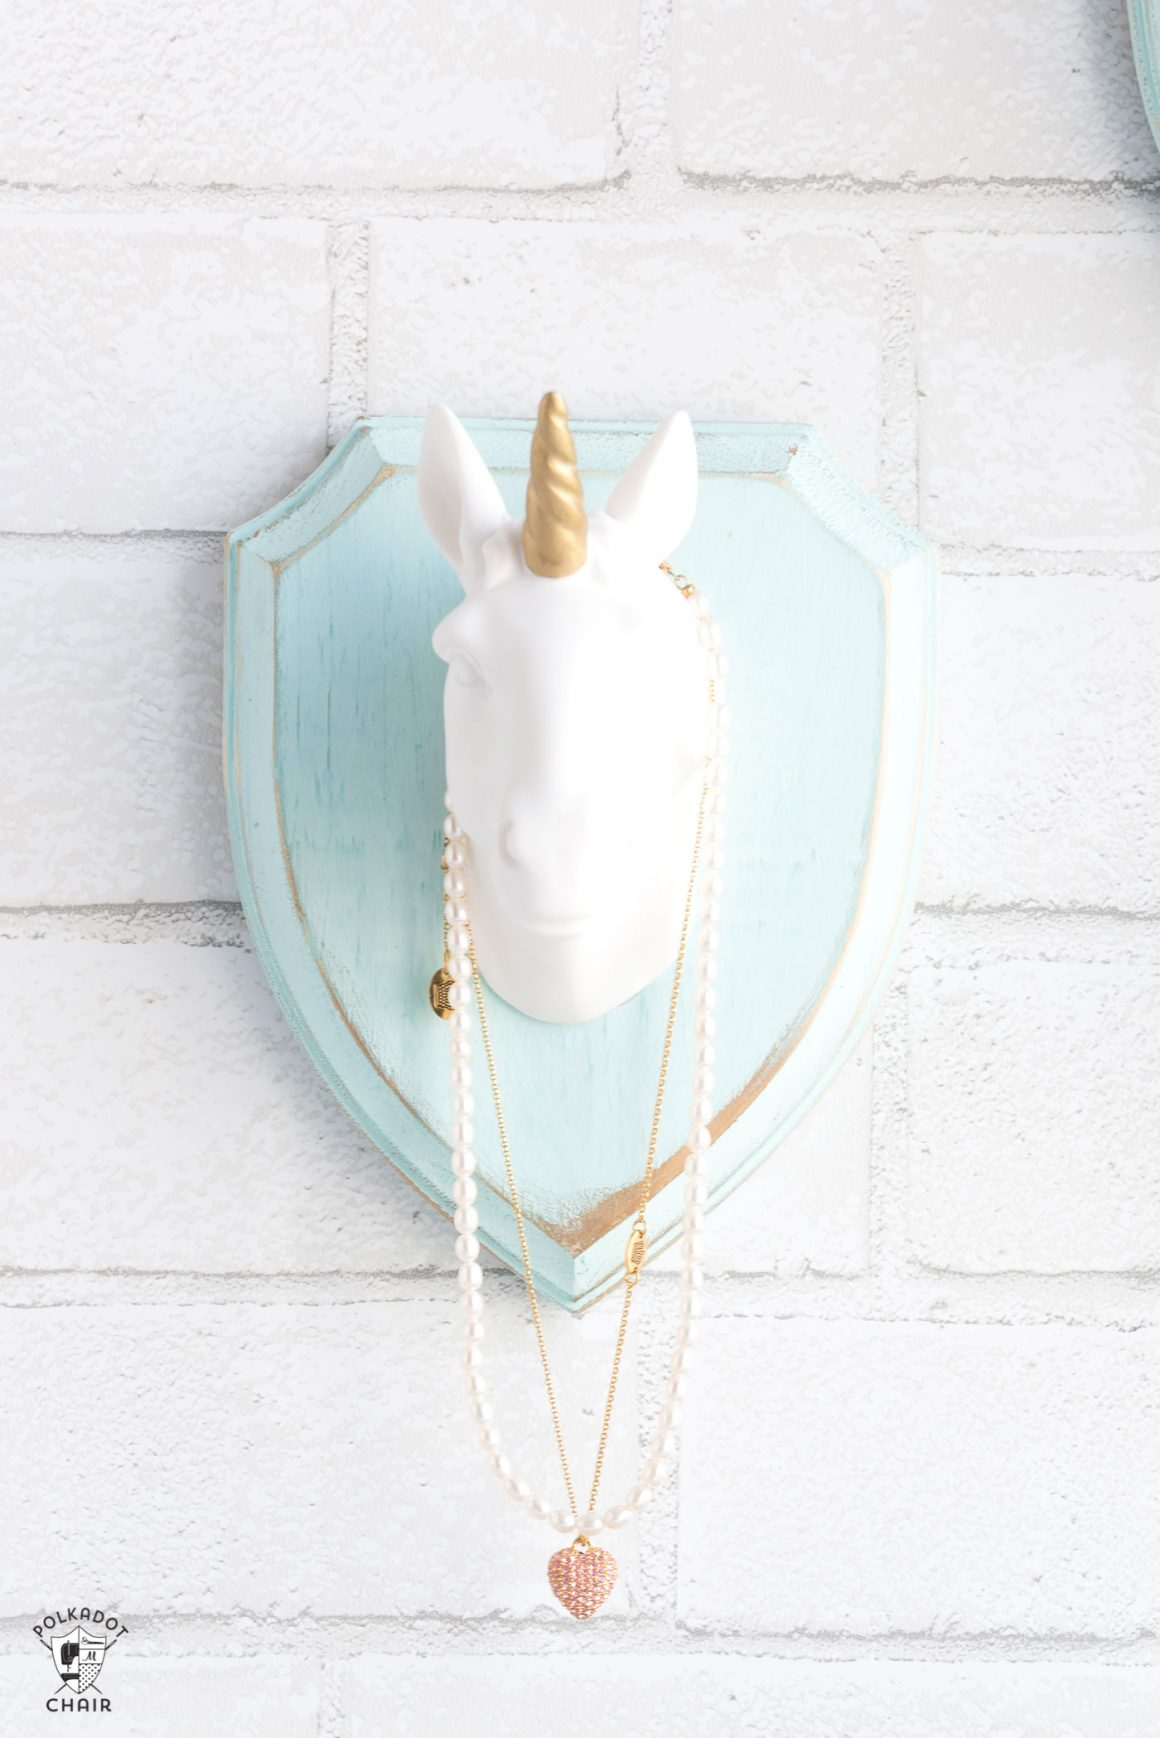 75+ Magically Inspiring Unicorn Crafts, DIYs, Foods and Gift Ideas: Unicorn Necklace Holder from Polka Dot Chair